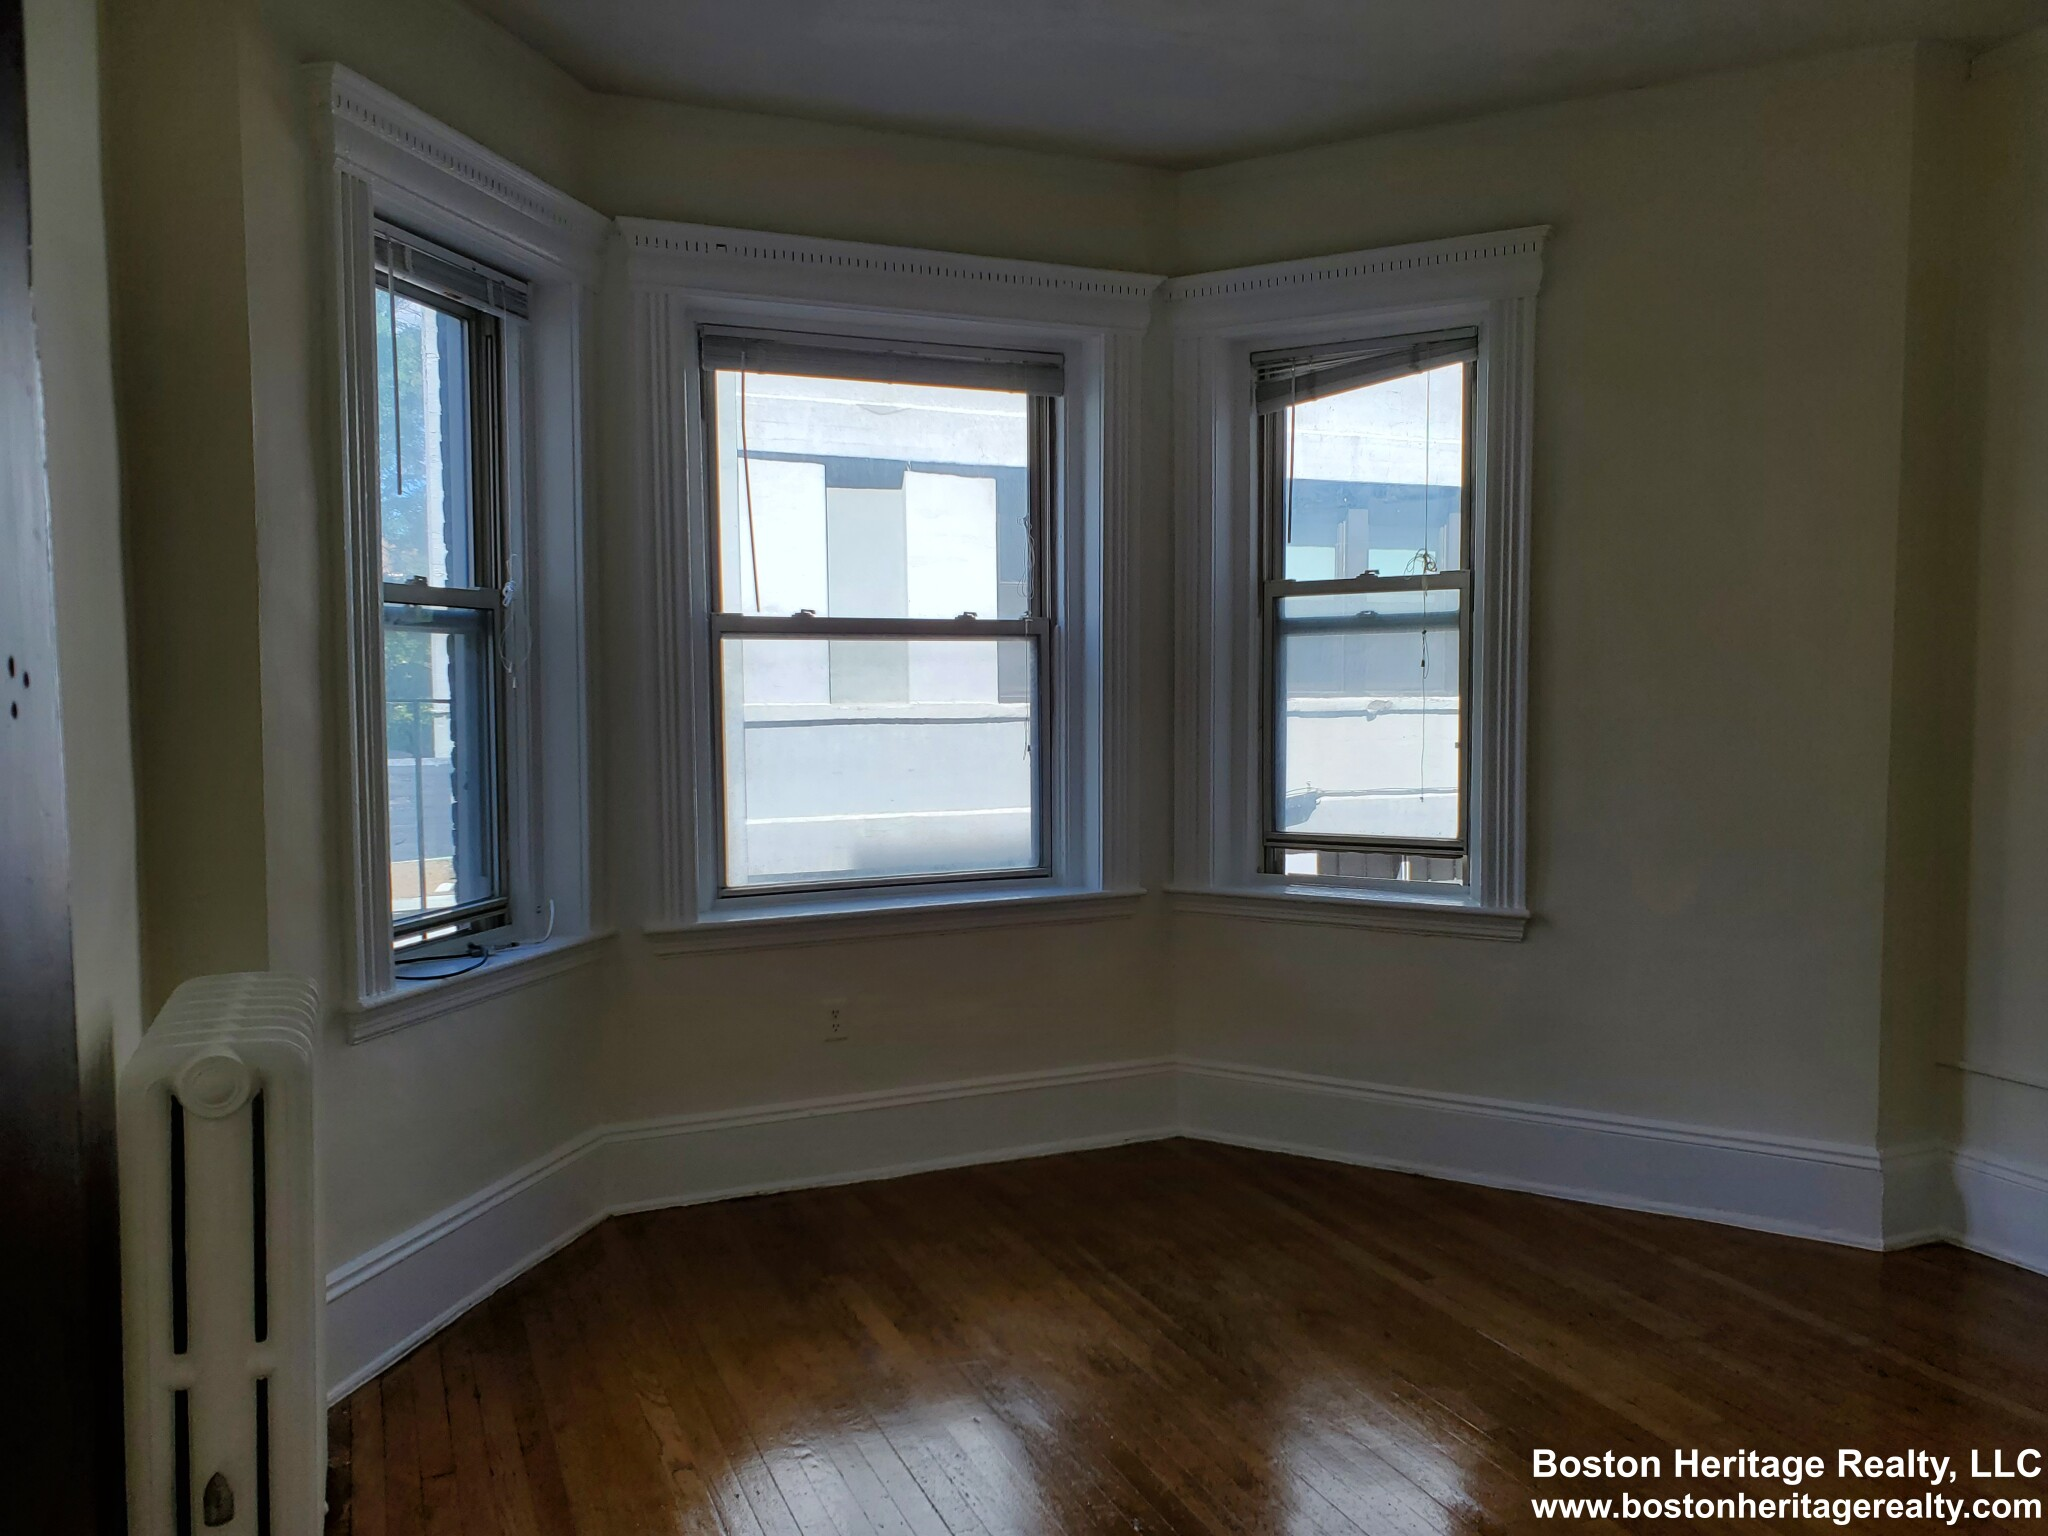 2.8 Beds, 1 Bath apartment in Boston, Fenway for $2,200